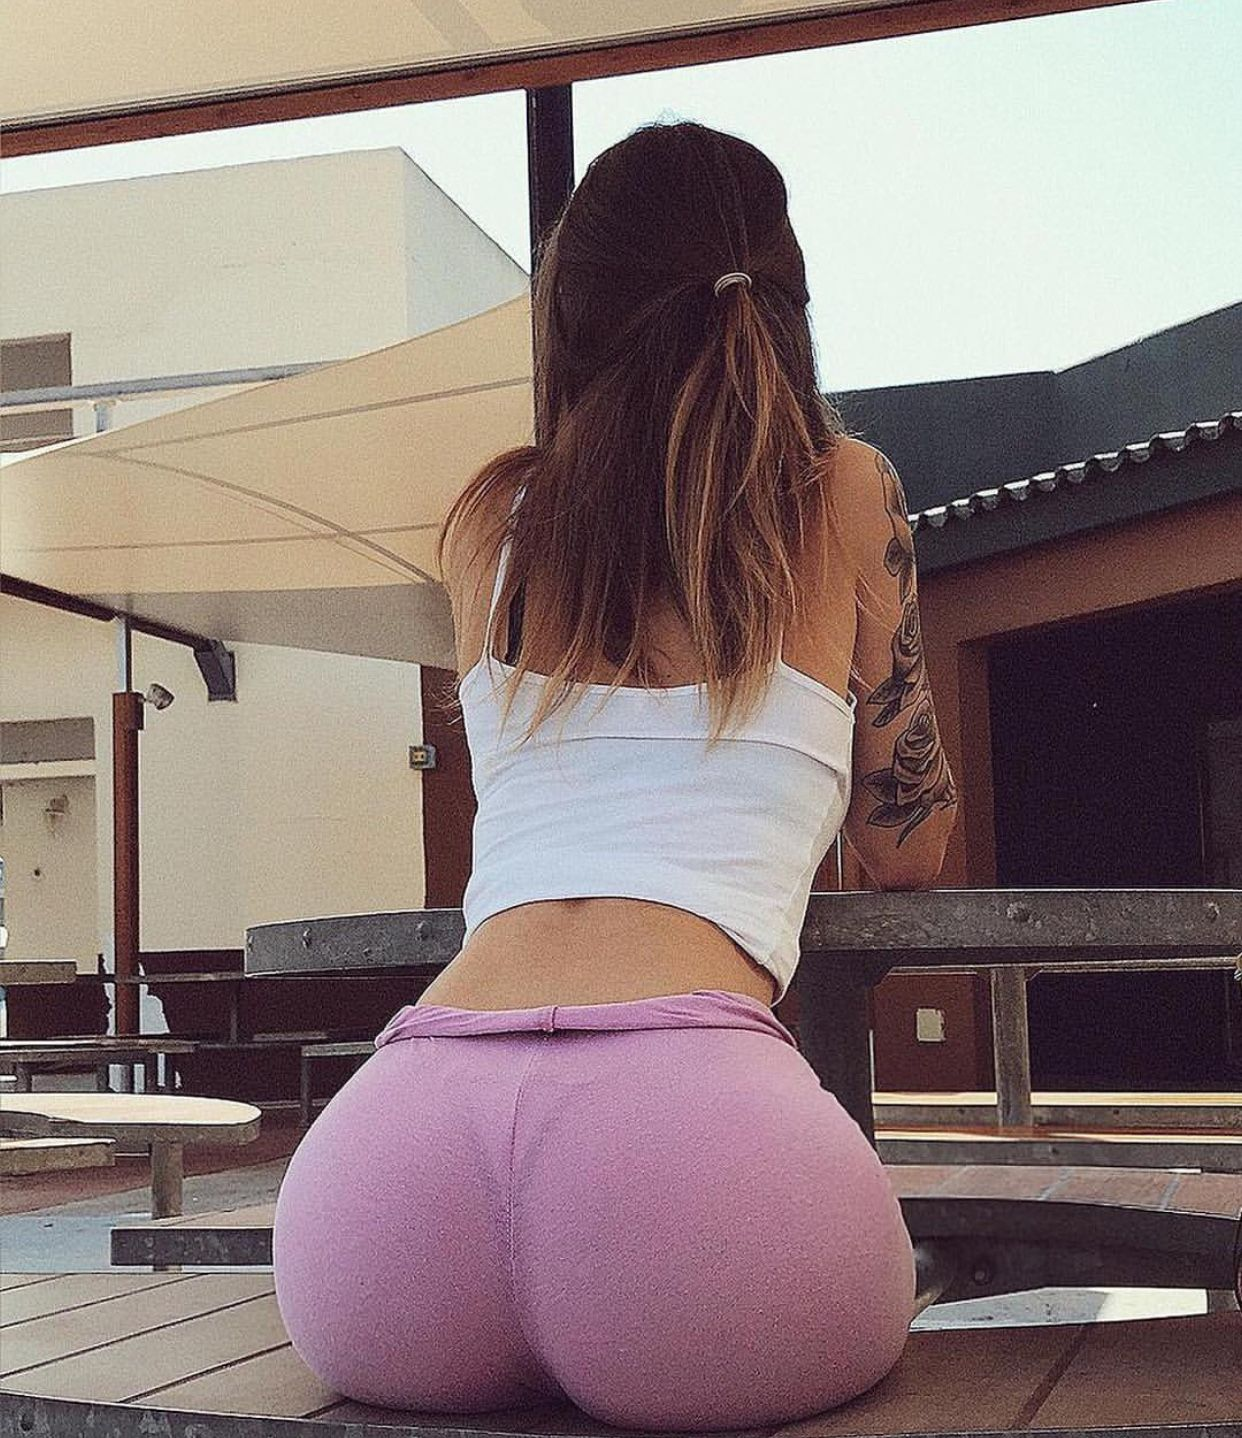 Fine ass in yoga pants